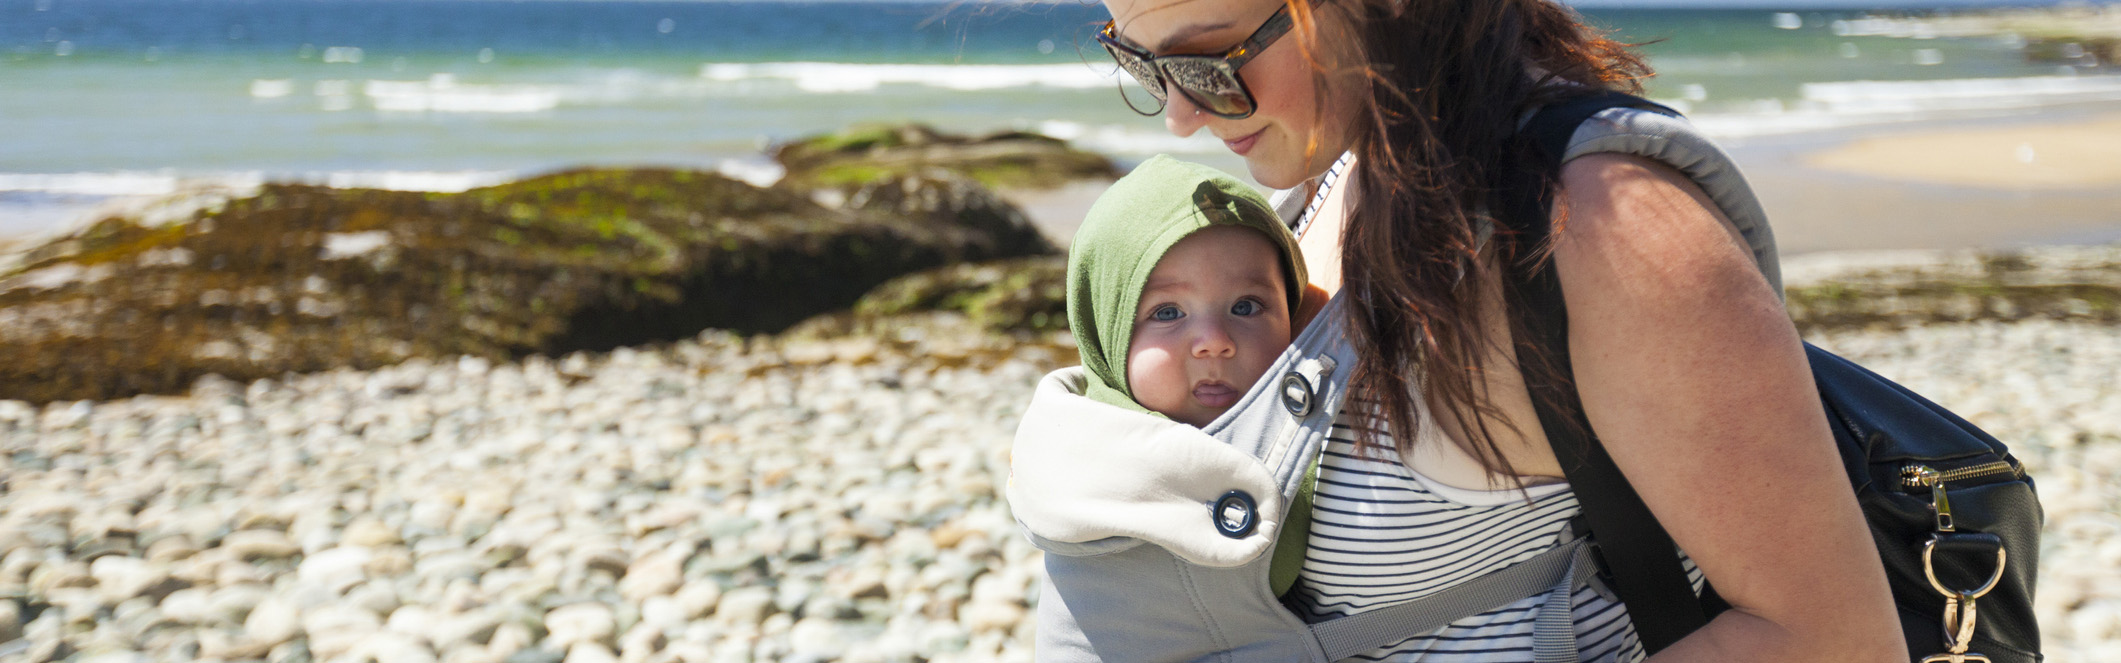 5 Best Baby Carriers To Keep Baby Secure